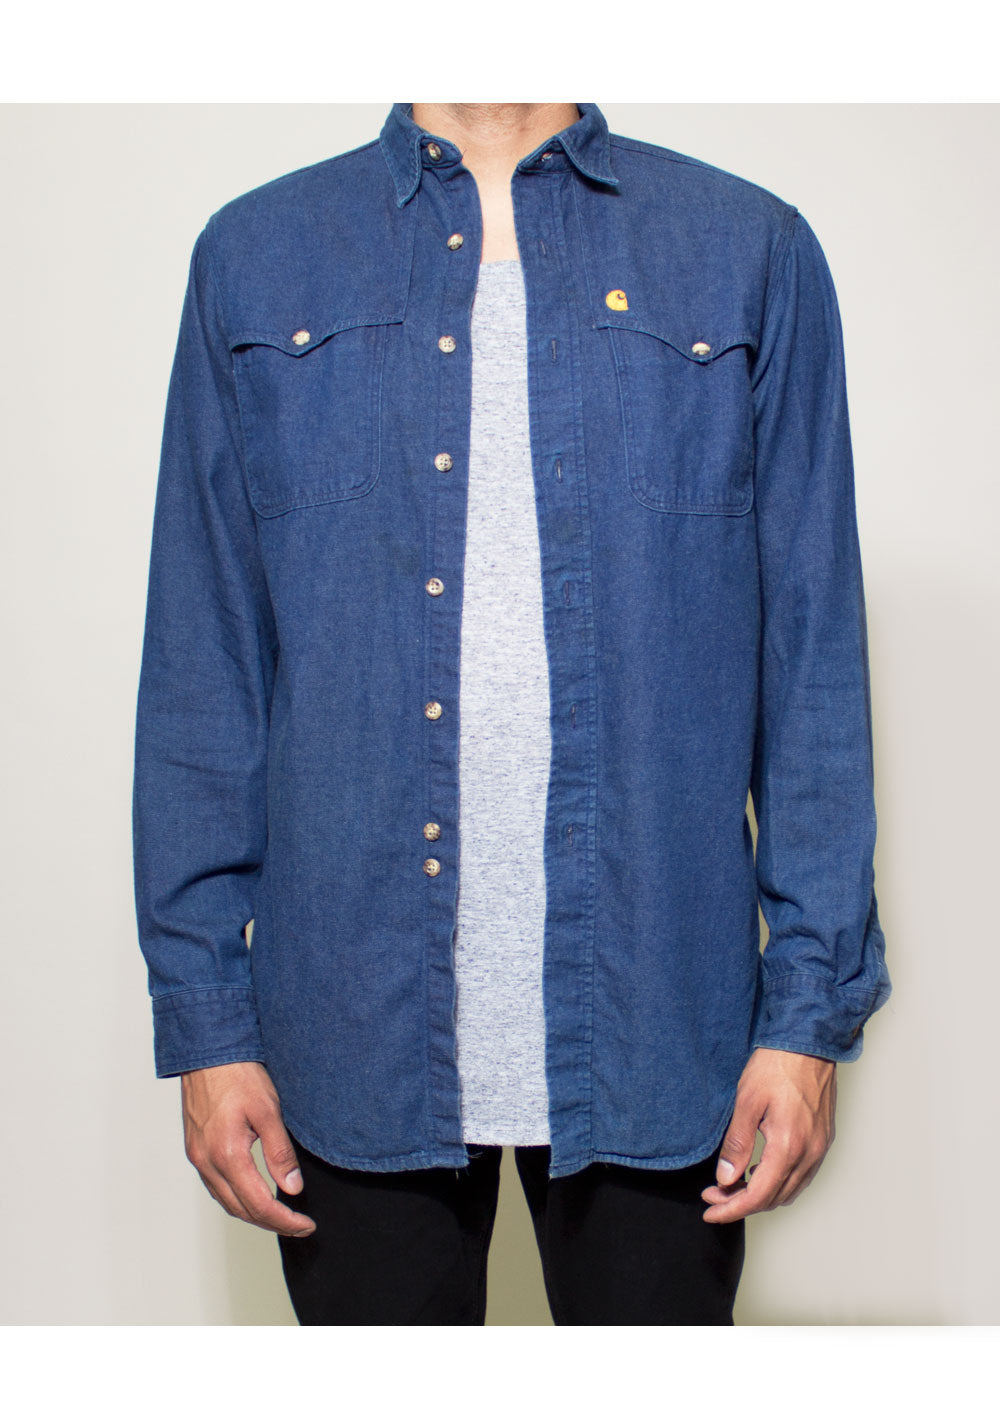 Damon Denim Button-Up